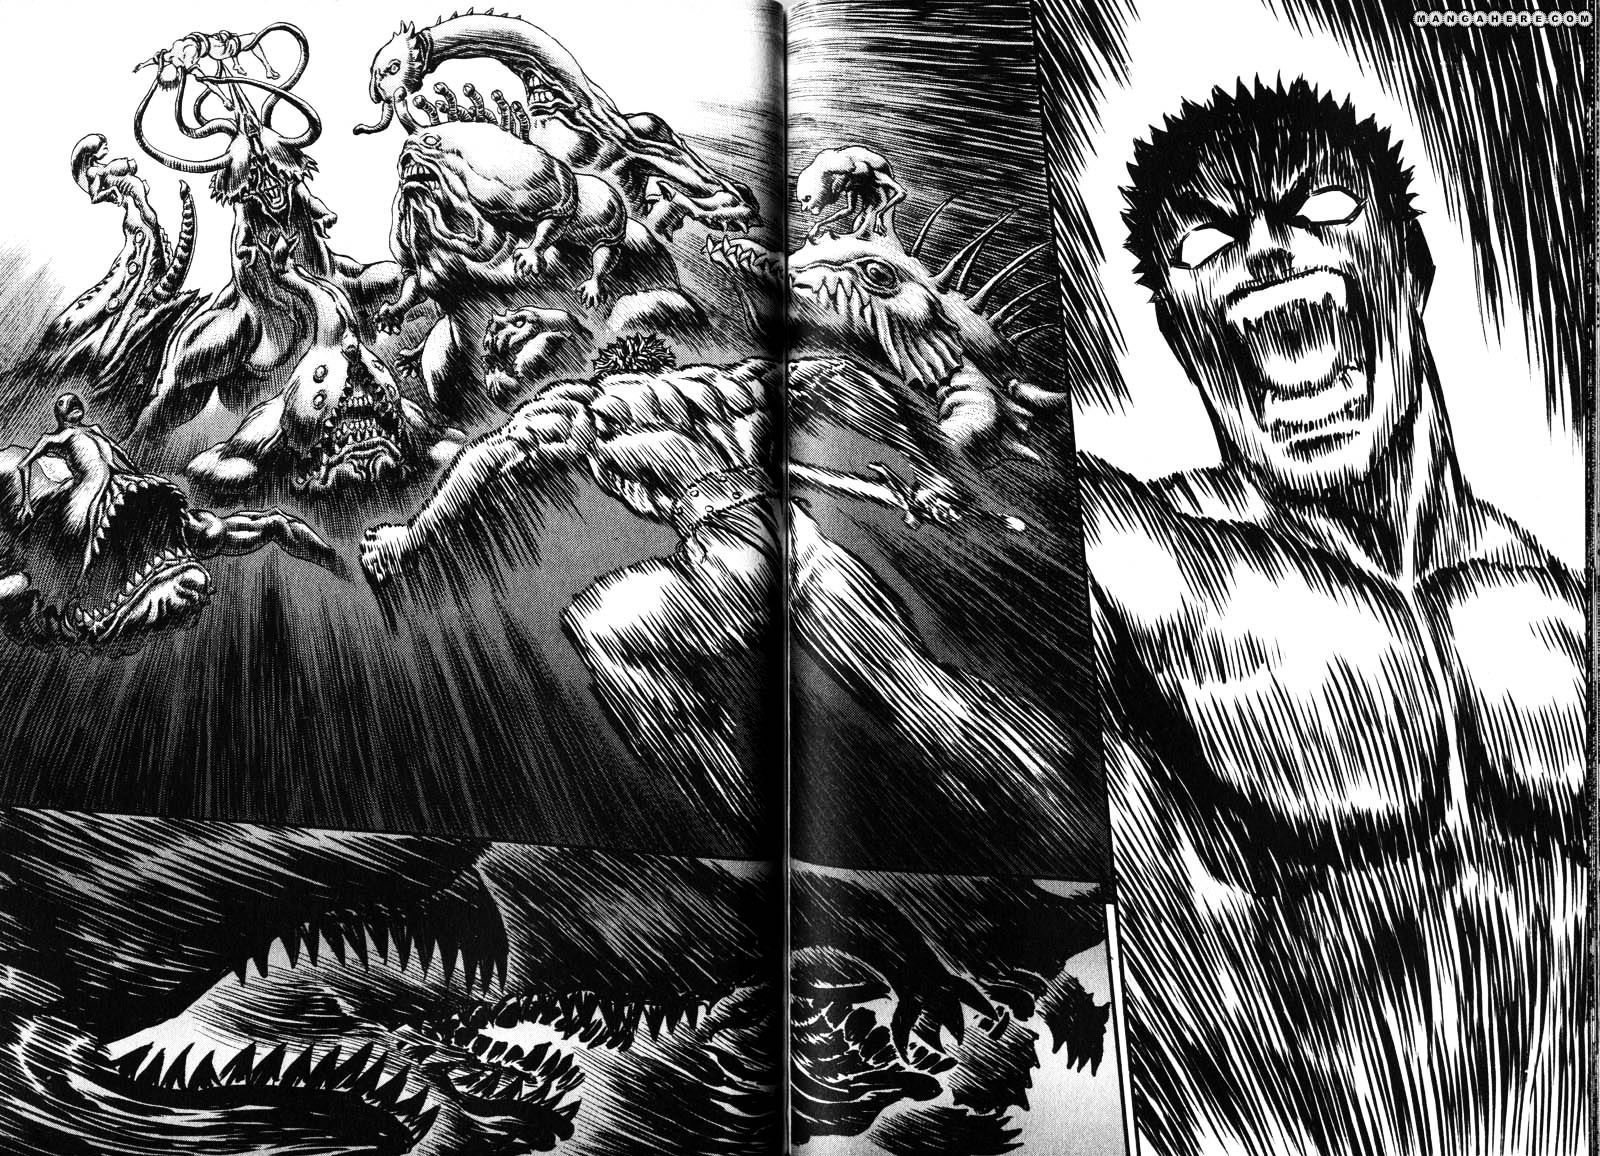 berserk anime 2018,berserk wiki,berserk movies,berserk imdb,berserk myanimelist,berserk anime 2019,berserk anime 1997,kentaro miura,berserk netflix,berserk eclipse chapter,berserk deluxe edition,berserk anime movie,berserk latest episode,berserk anime netflix,berserk season 3,berserk anime 1997 streaming,berserk 2016 imdb,berserk all episodes,berserk manga,berserk anime,berserk warnings,